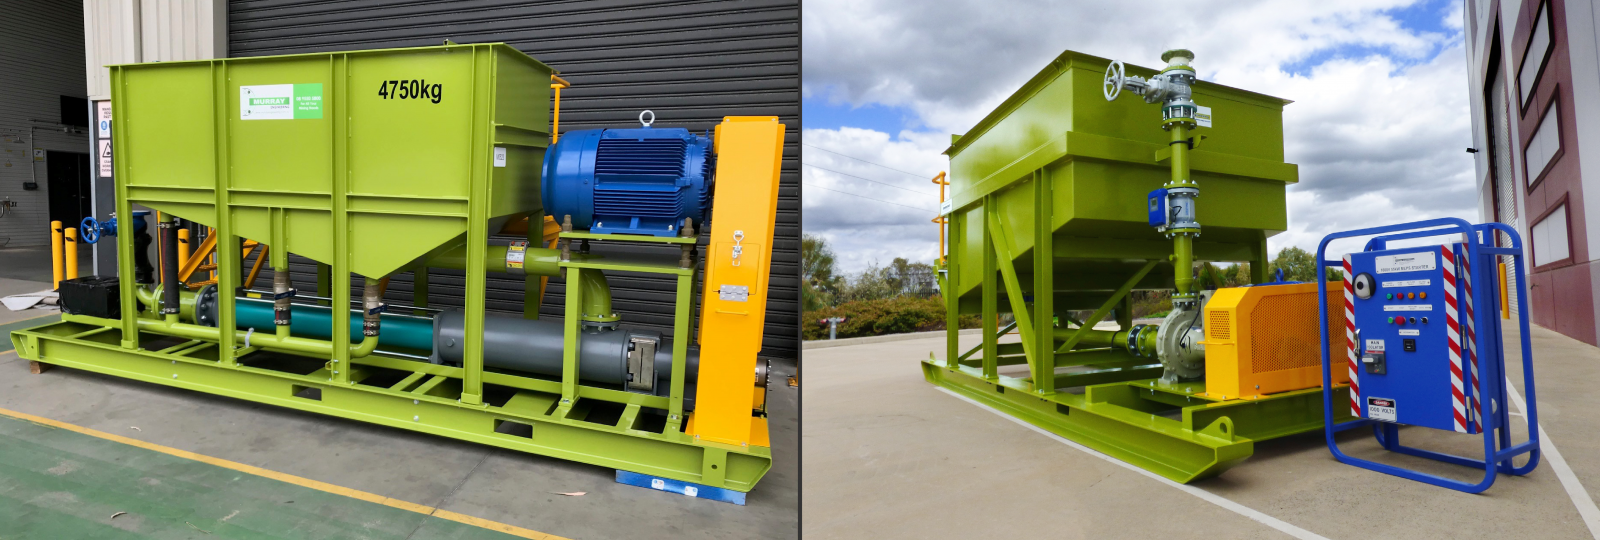 MEPS Dewatering Pumps for Underground or Open Pit Mining